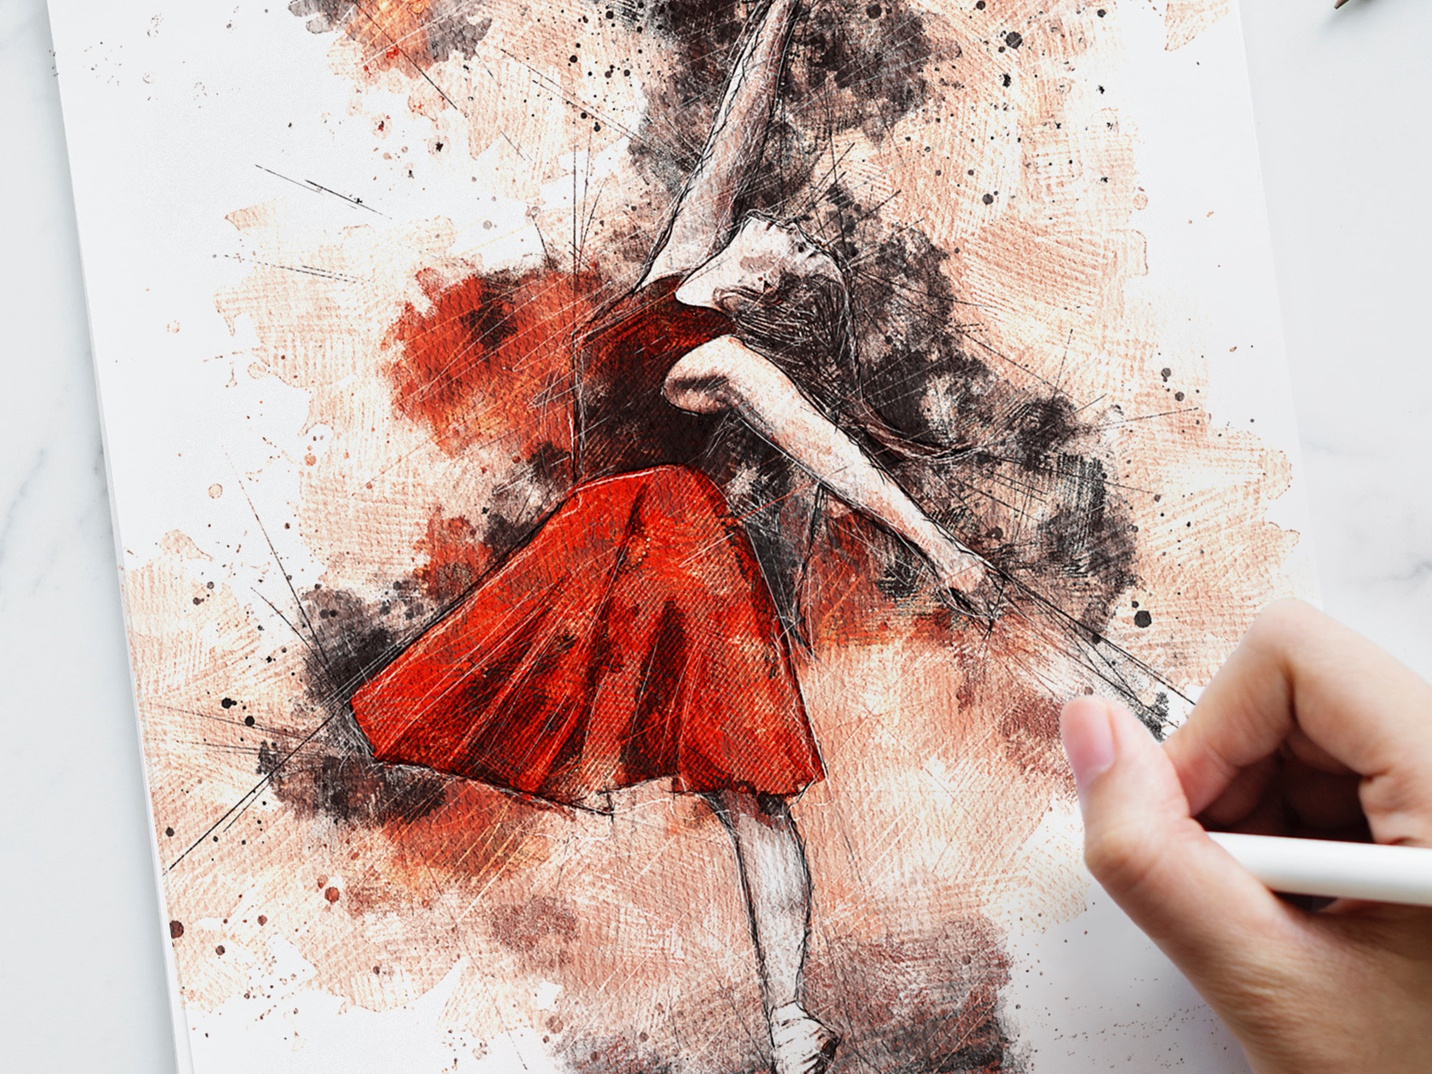 Pencil sketch fx photoshop add on actionscript adobe vfx animated gif sketch photoshop effect